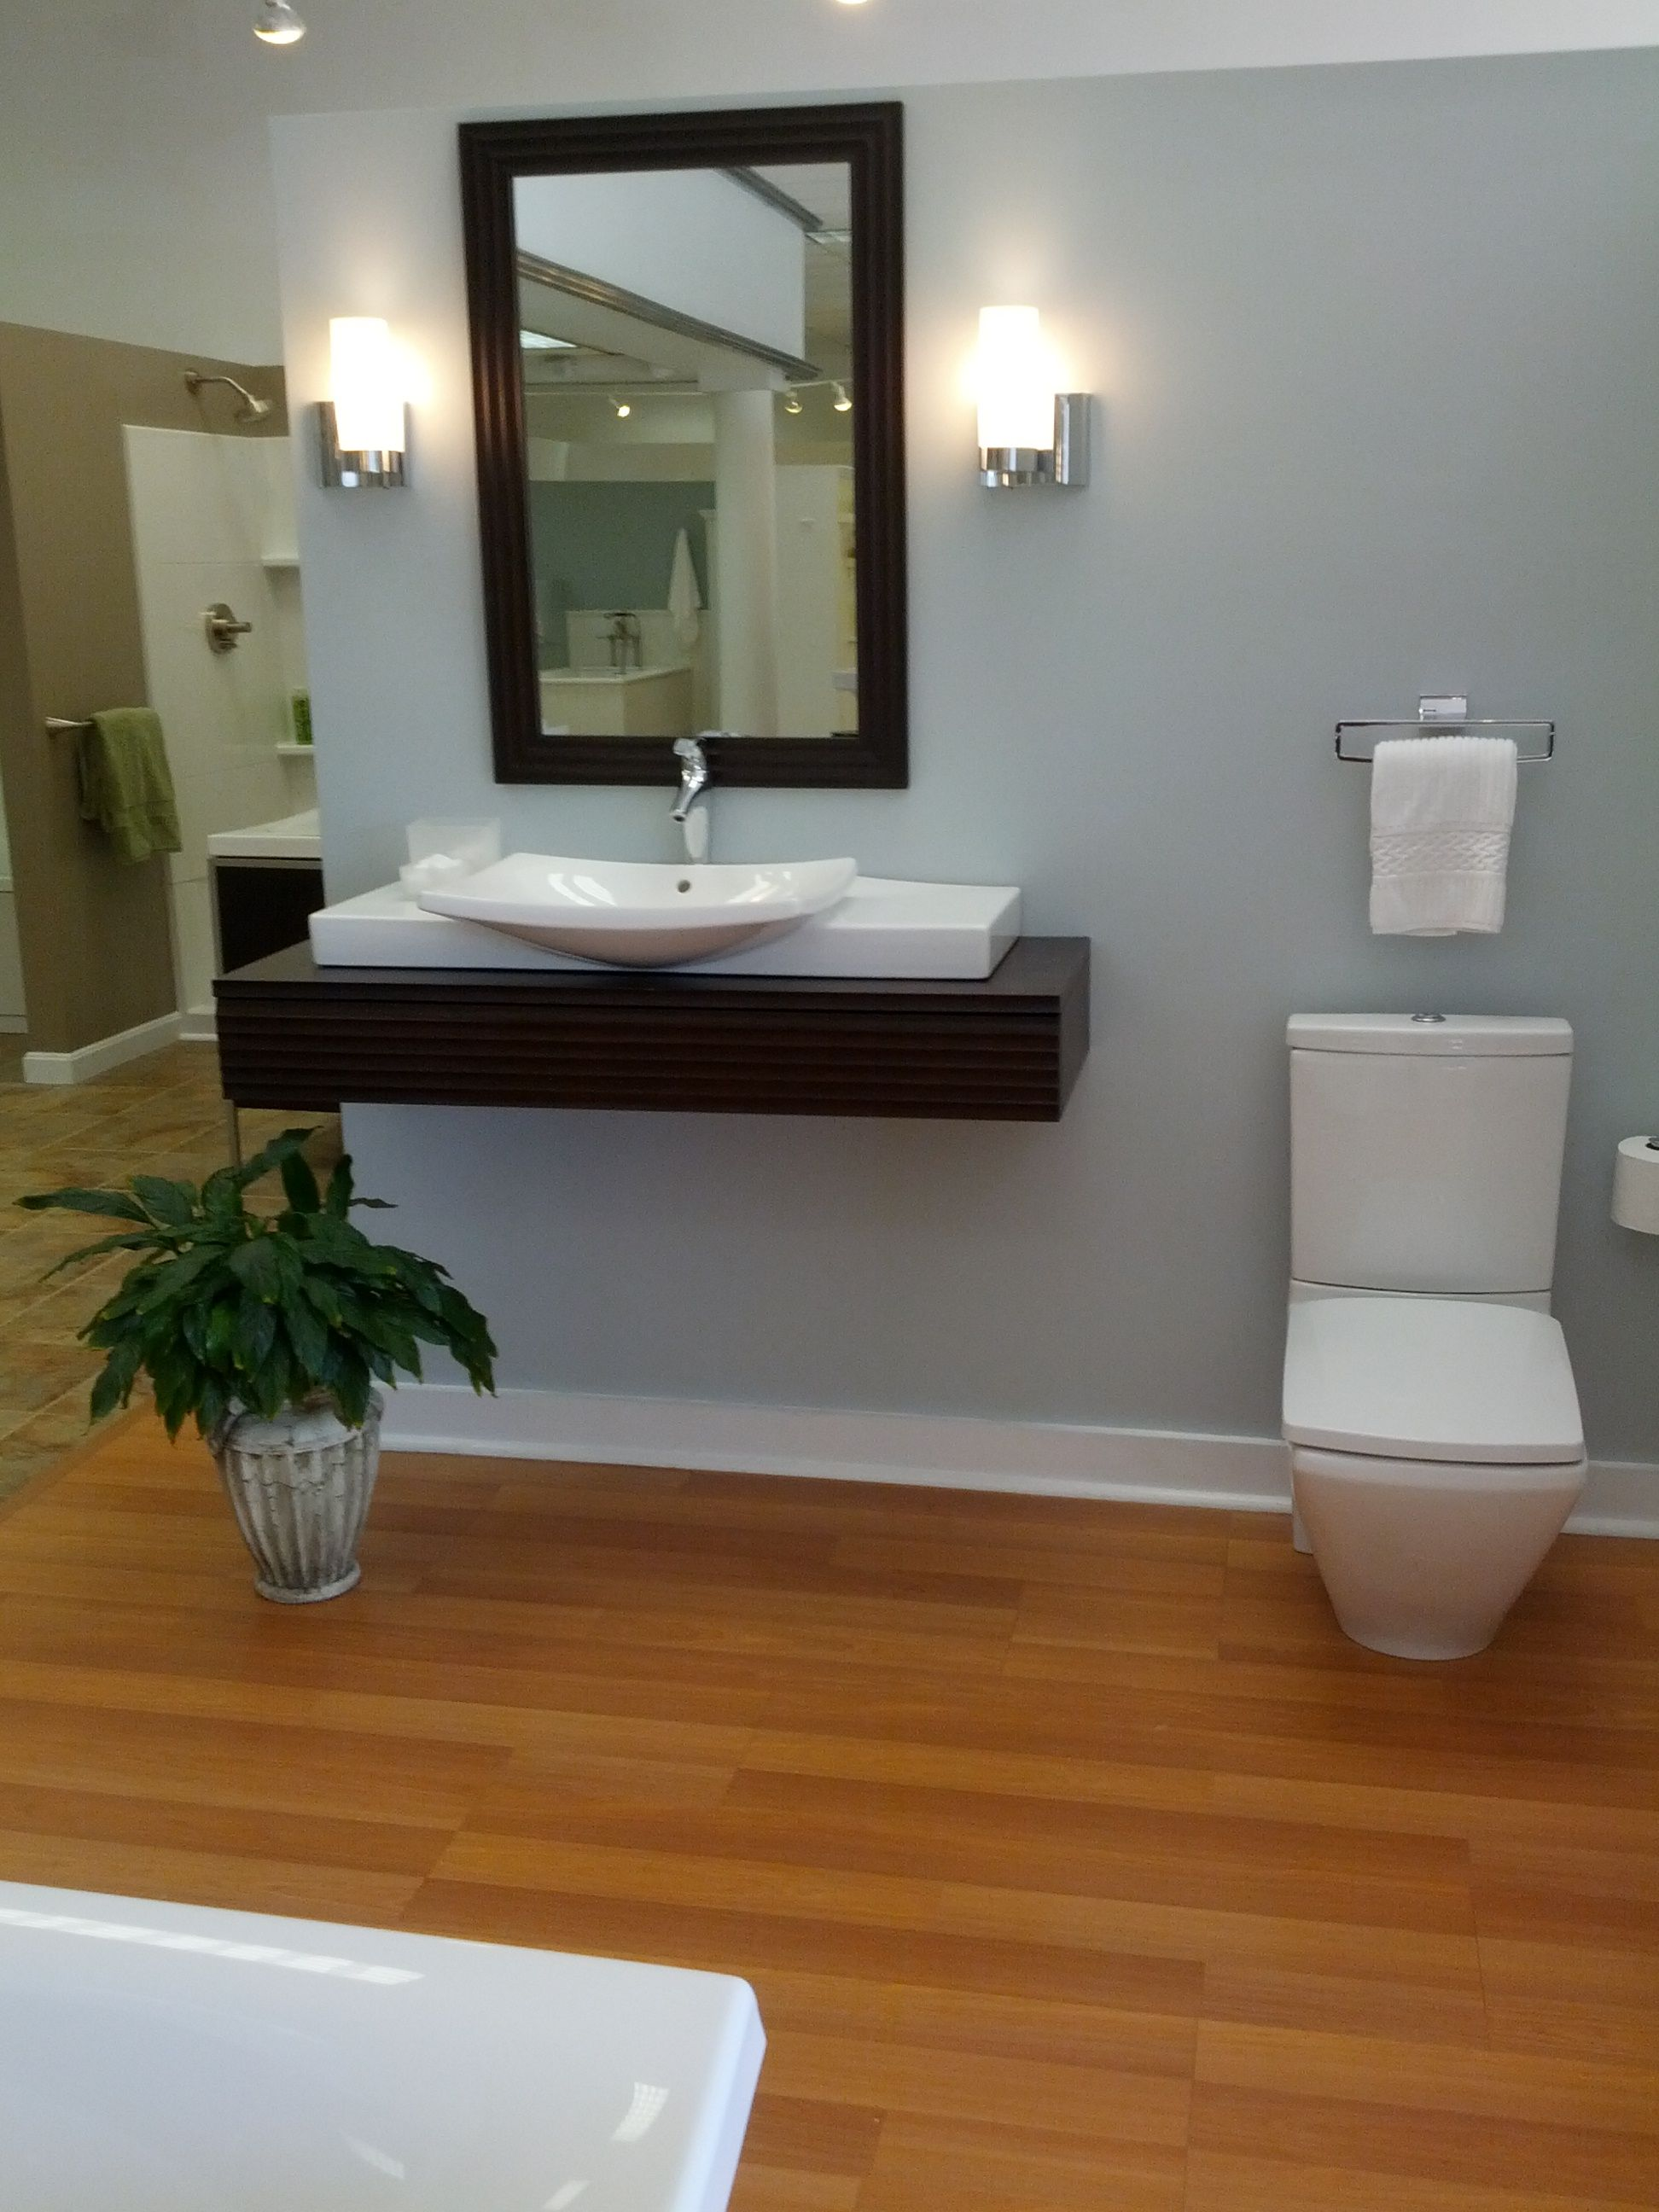 pictures of modern handicap bathrooms | For the handicap bathroom ...